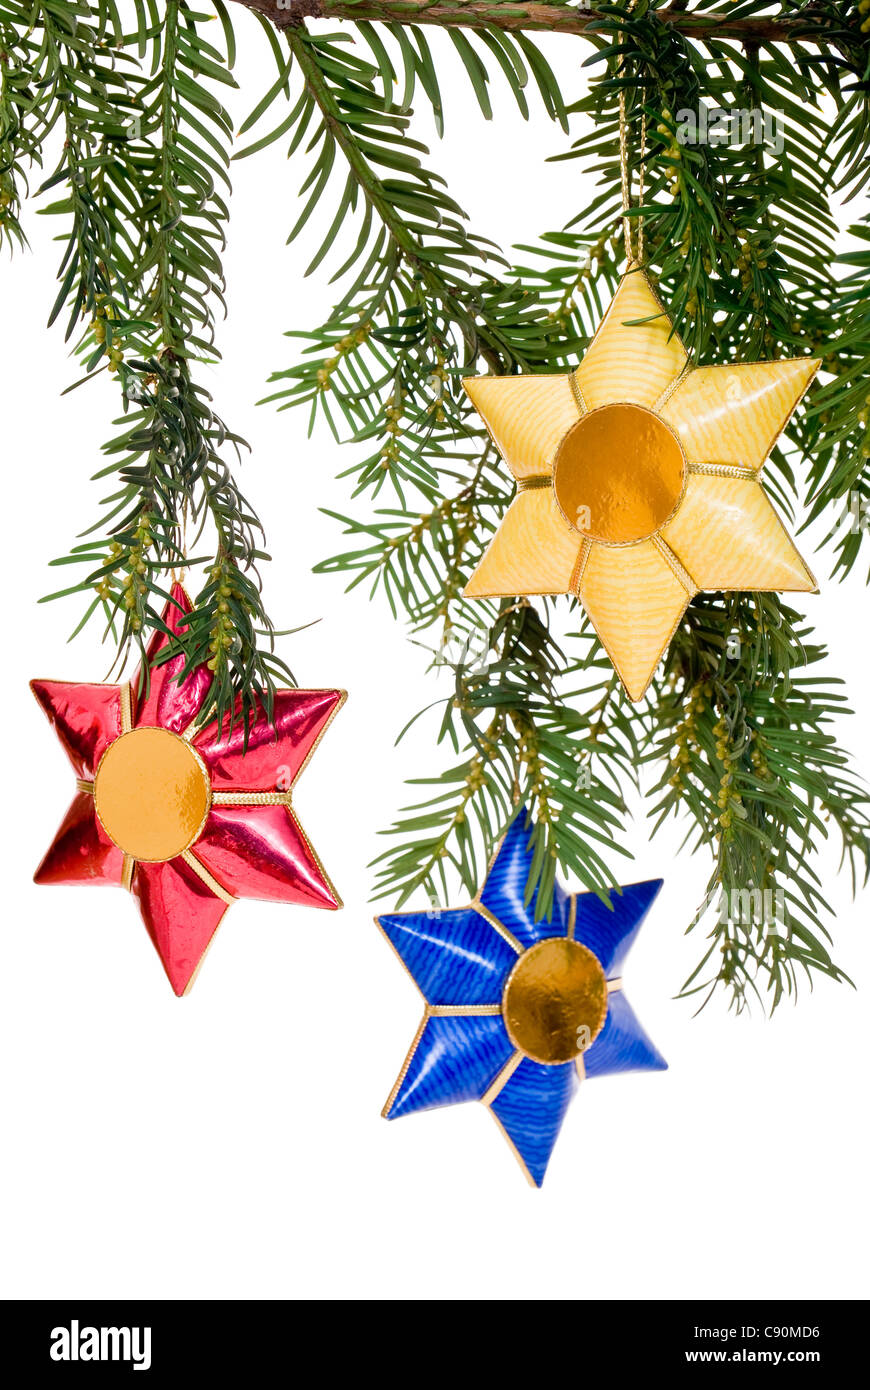 colorful star as decoration on Christmas tree - Stock Image